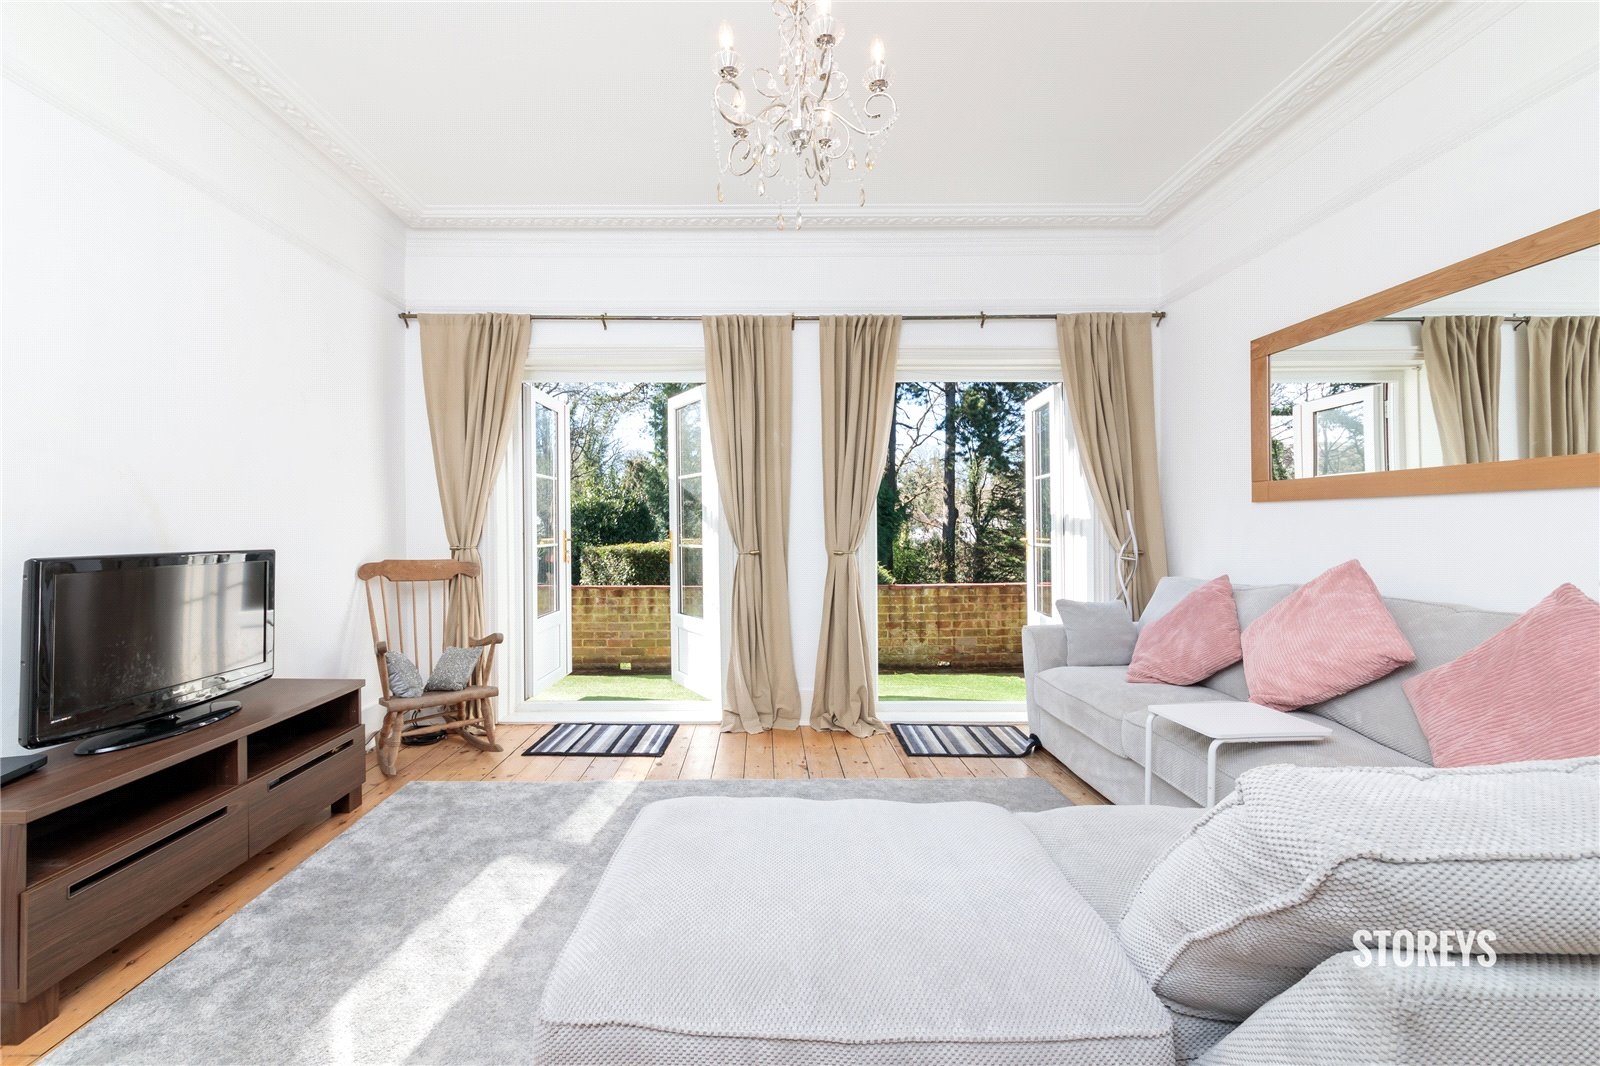 Snatts Hill  Oxted  Surrey  RH8